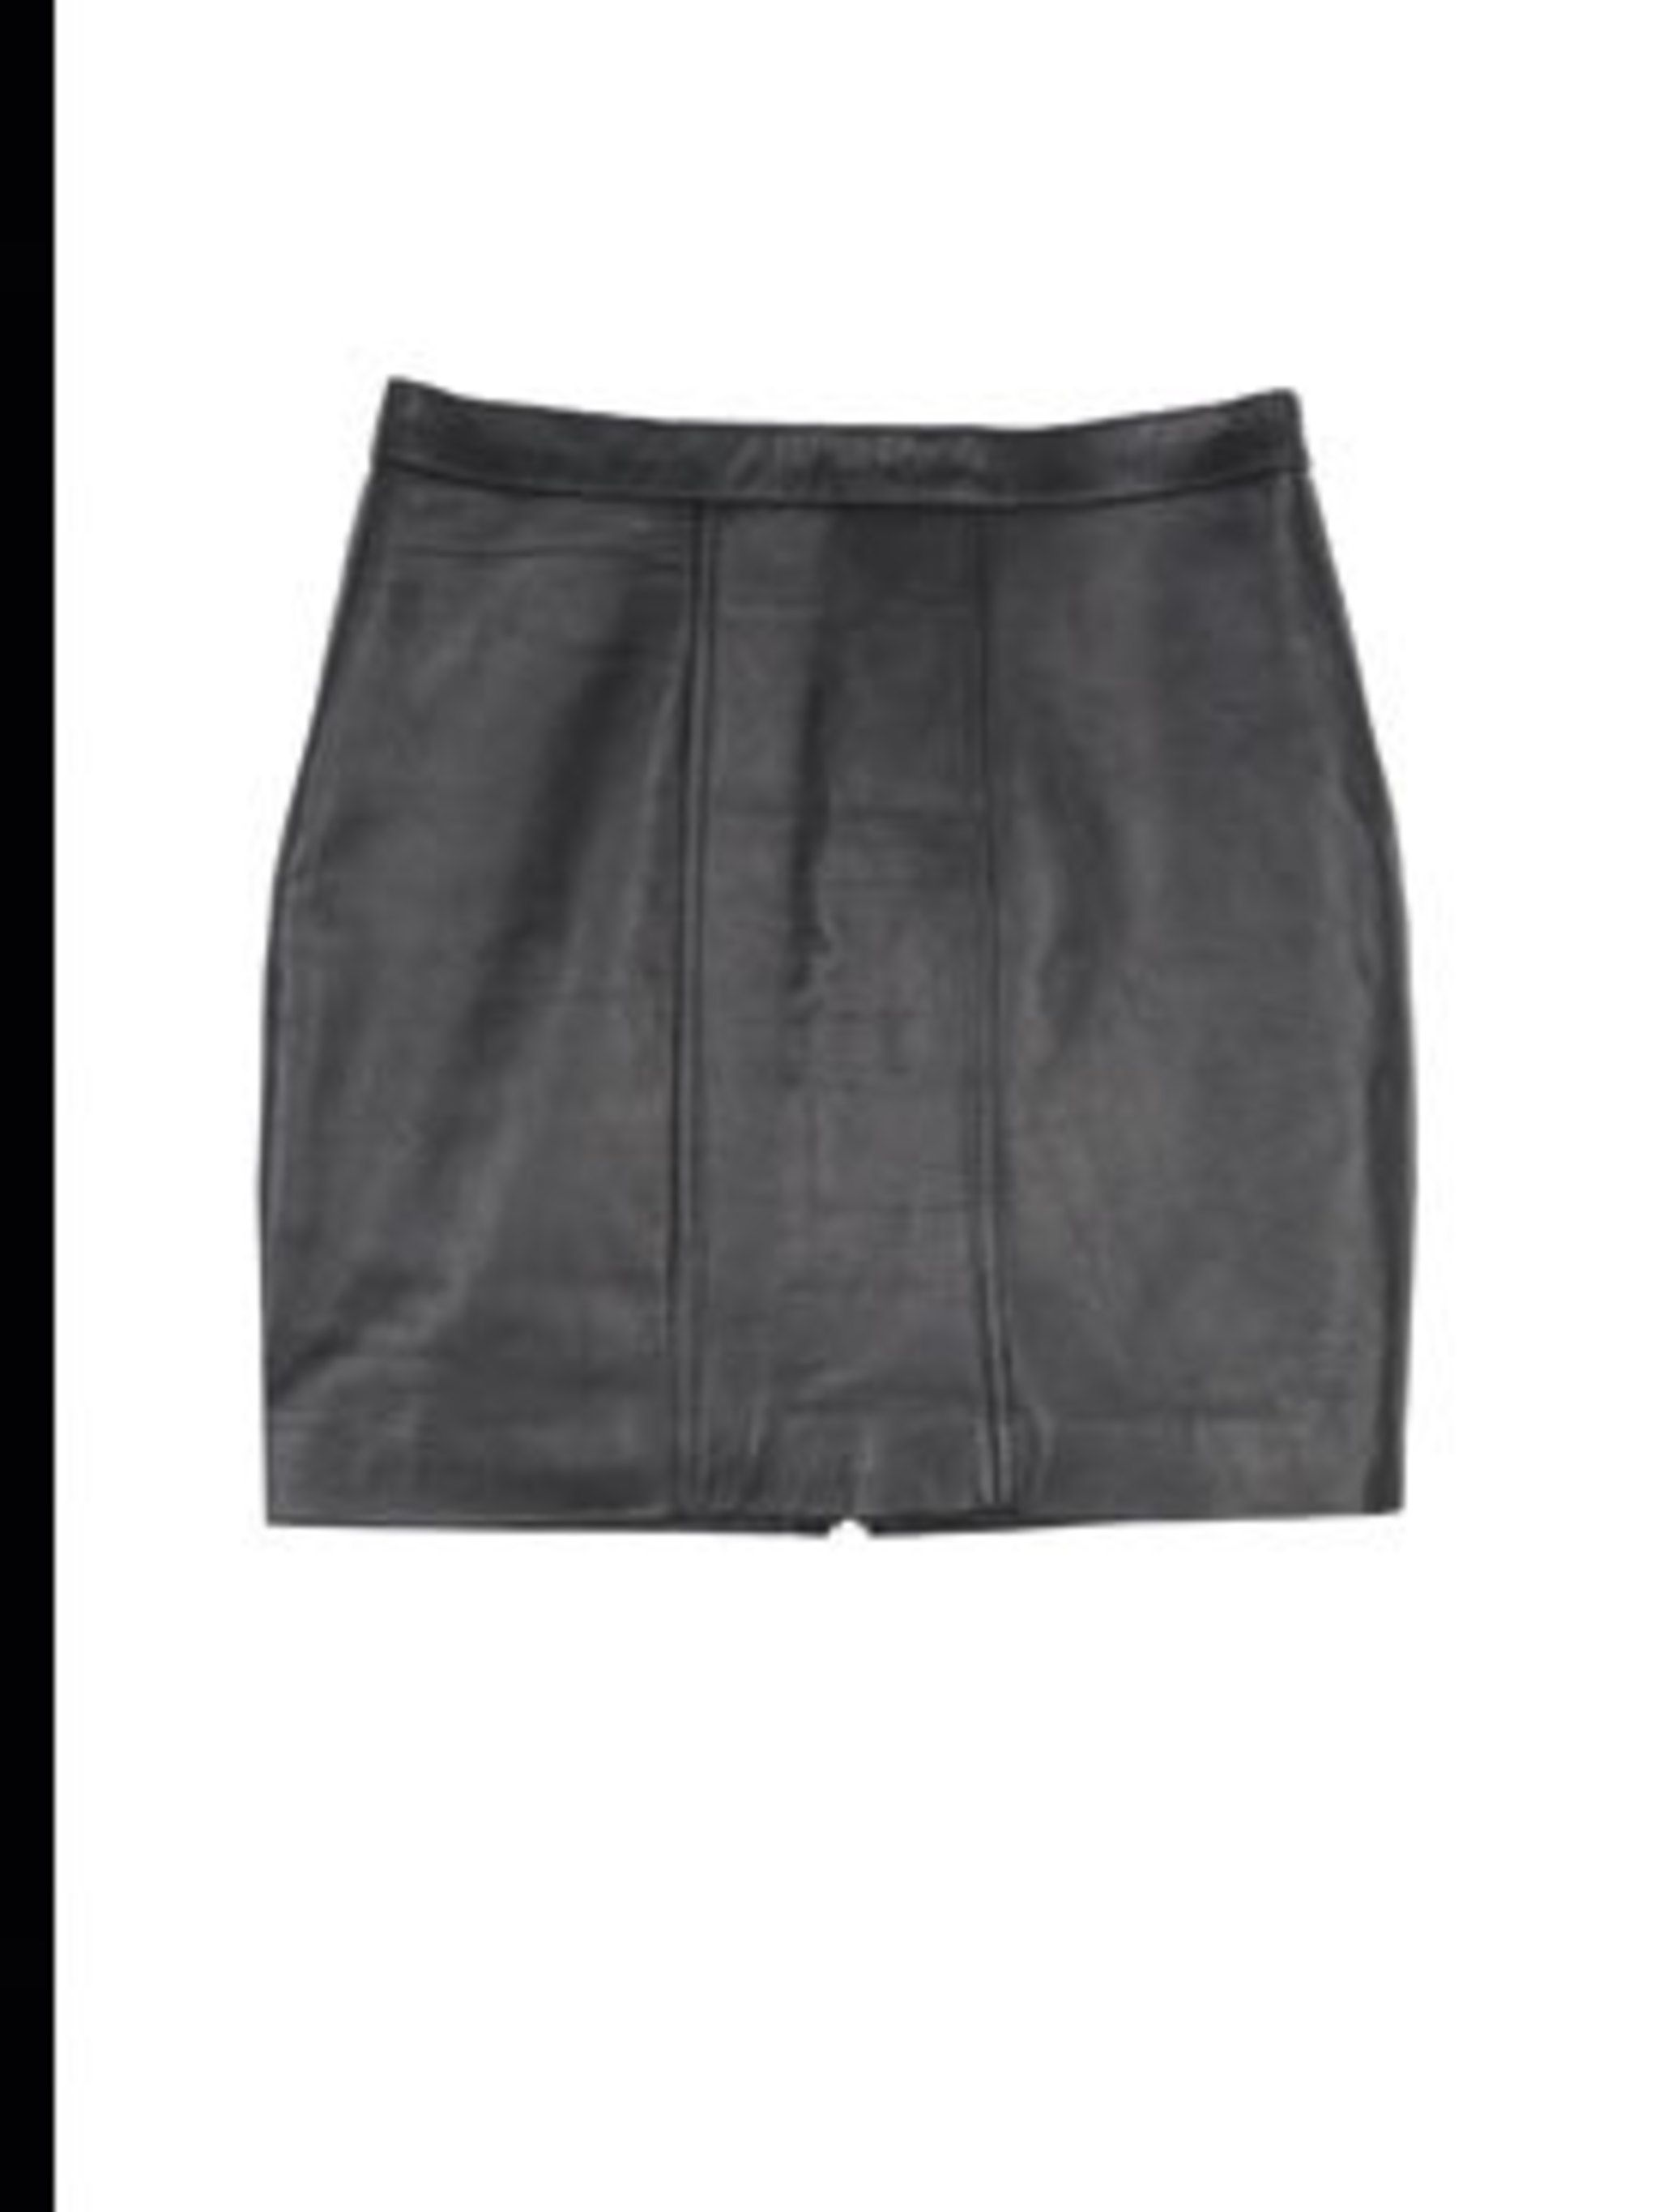 <p>Black leather skirt, £55, by Renewal at Urban Outfitters (0203 219 1944).</p>